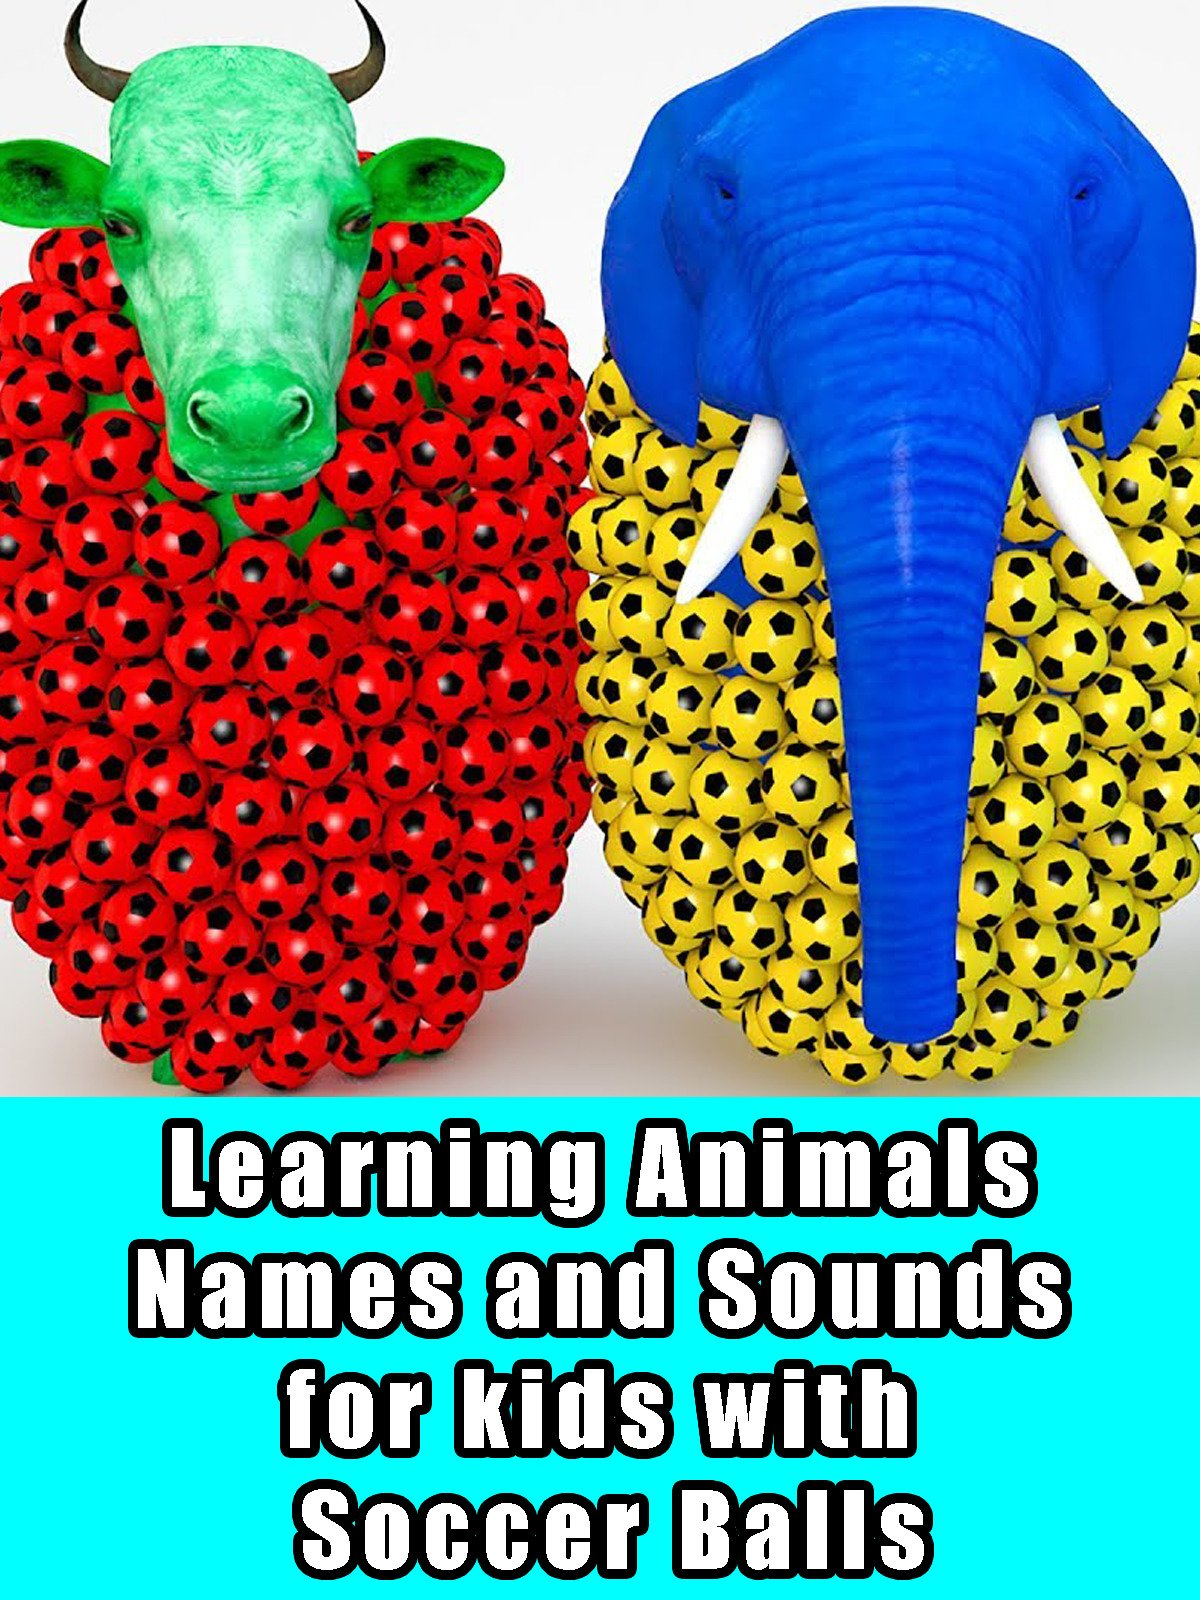 Learning Animals Names and Sounds for kids with Soccer Balls on Amazon Prime Video UK